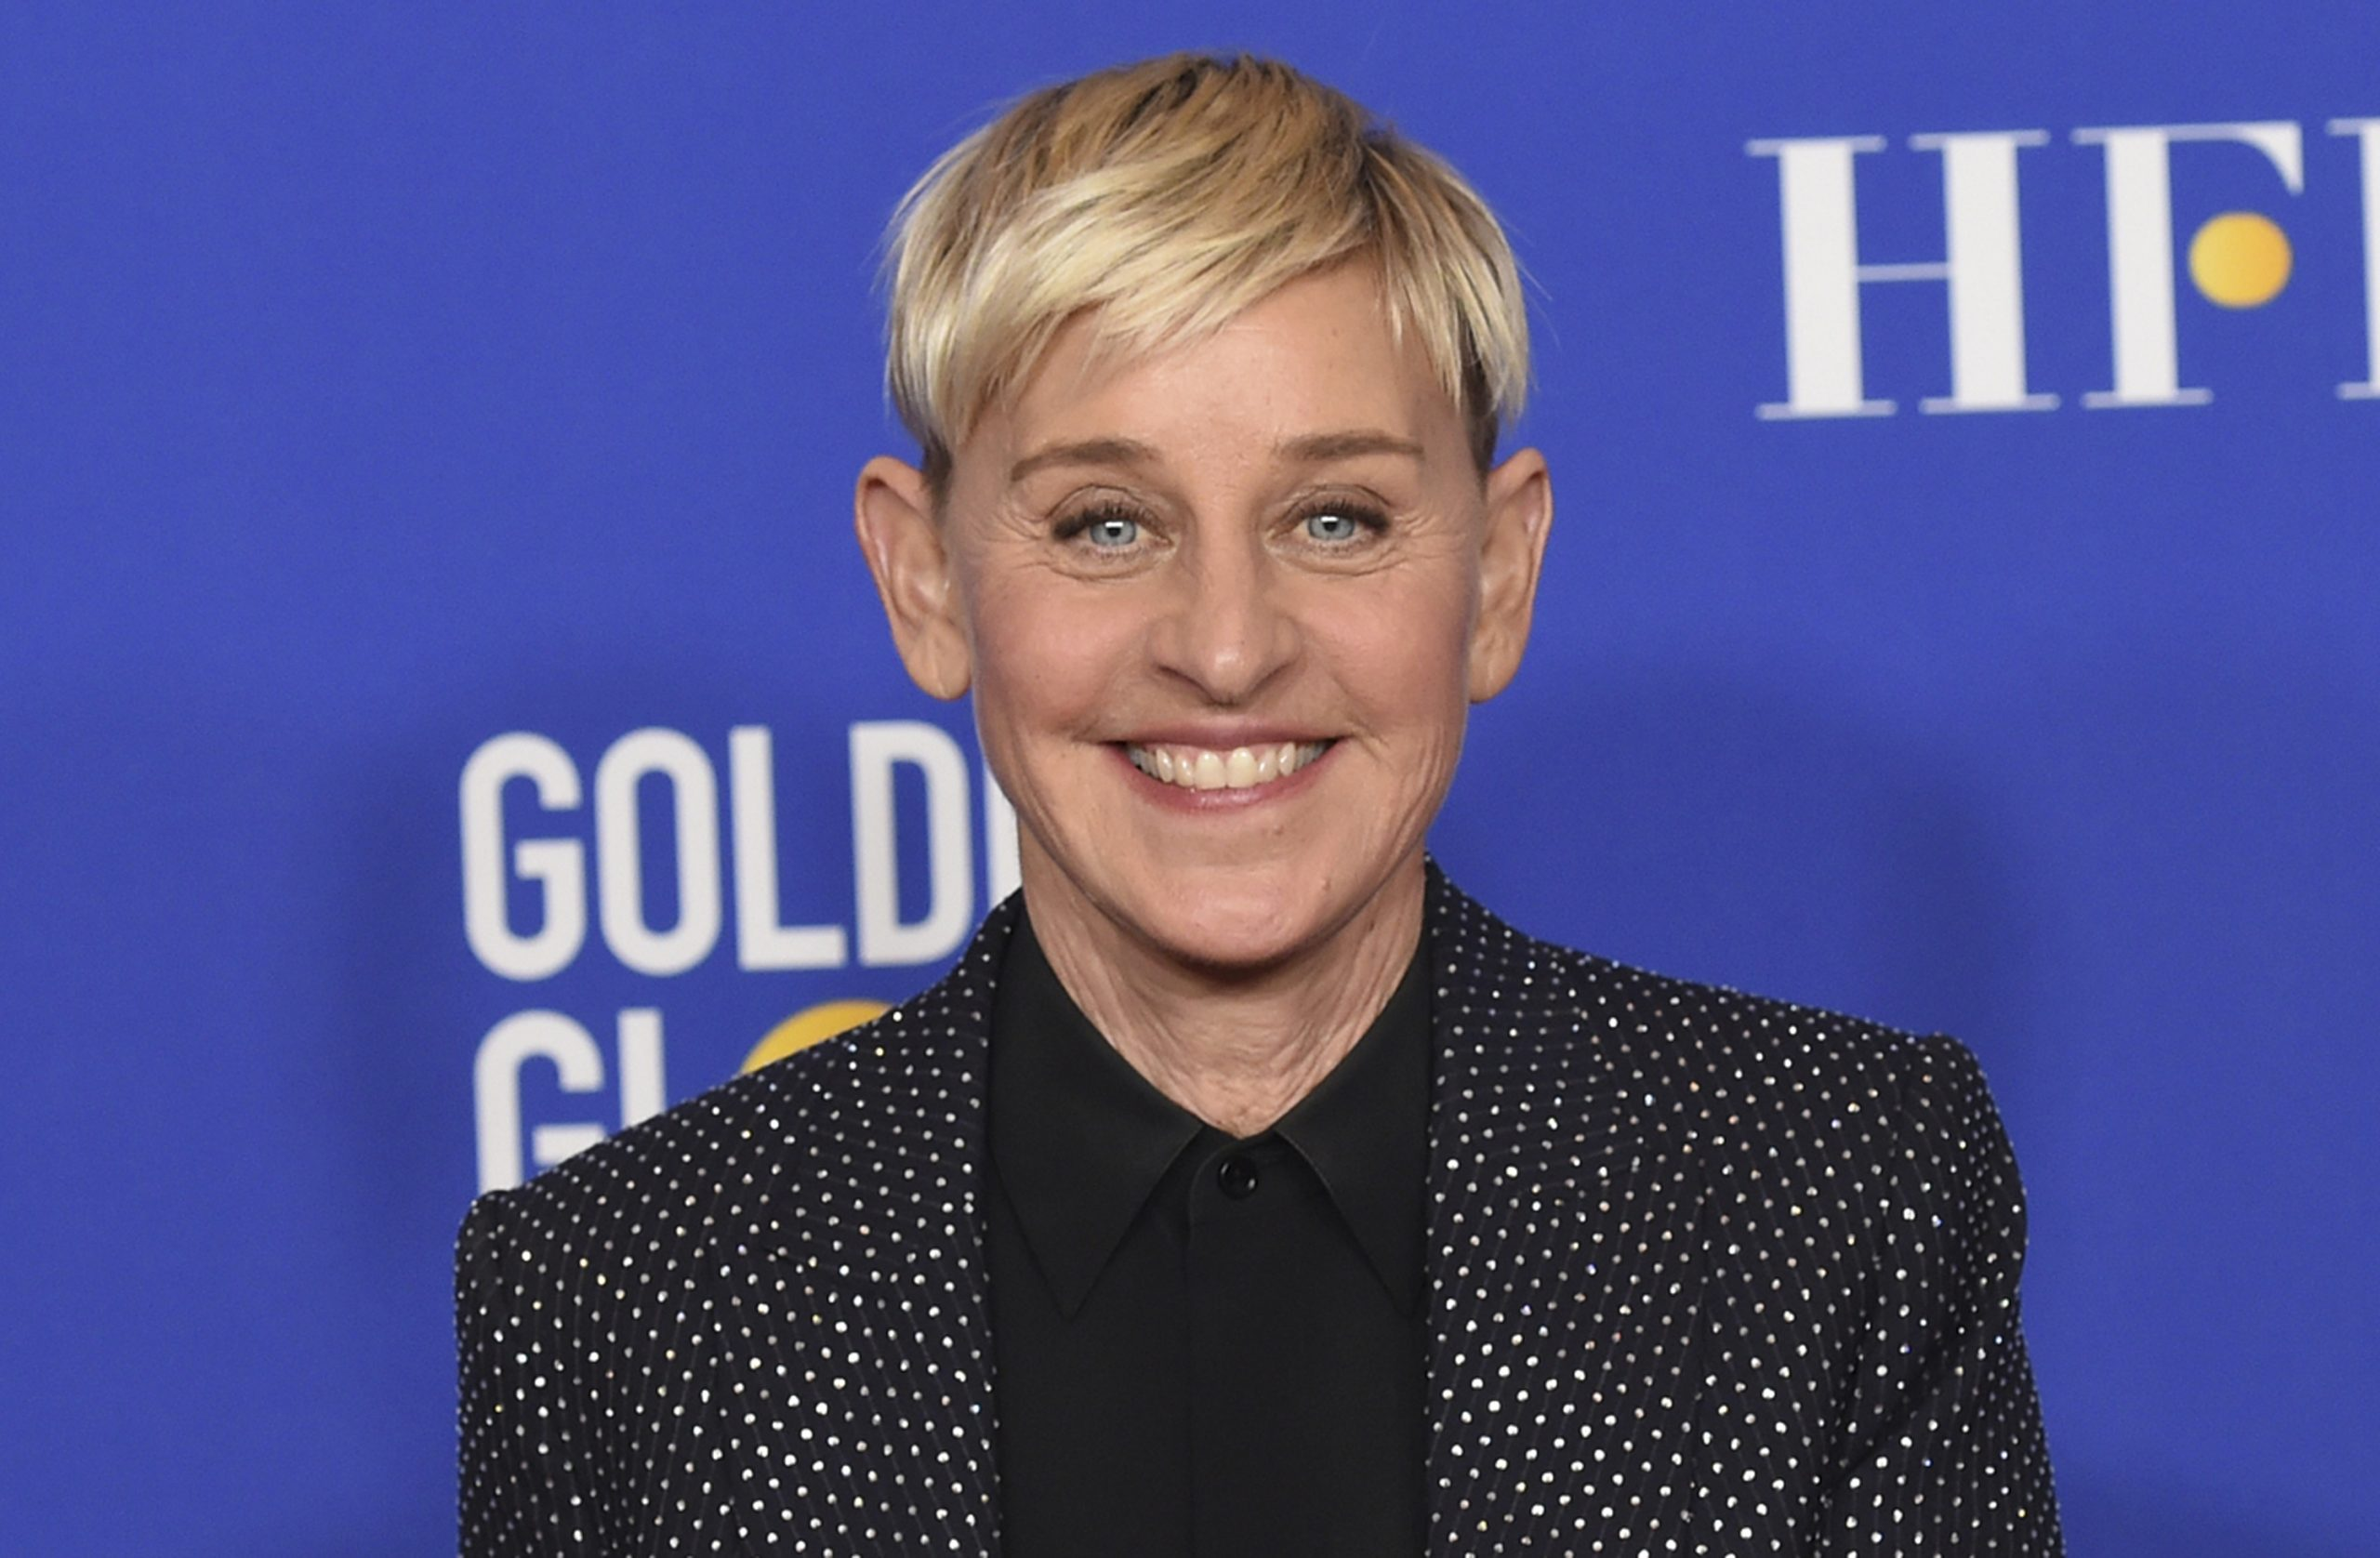 Ellen DeGeneres show receives highest ratings since 2016 after season 18 comeback